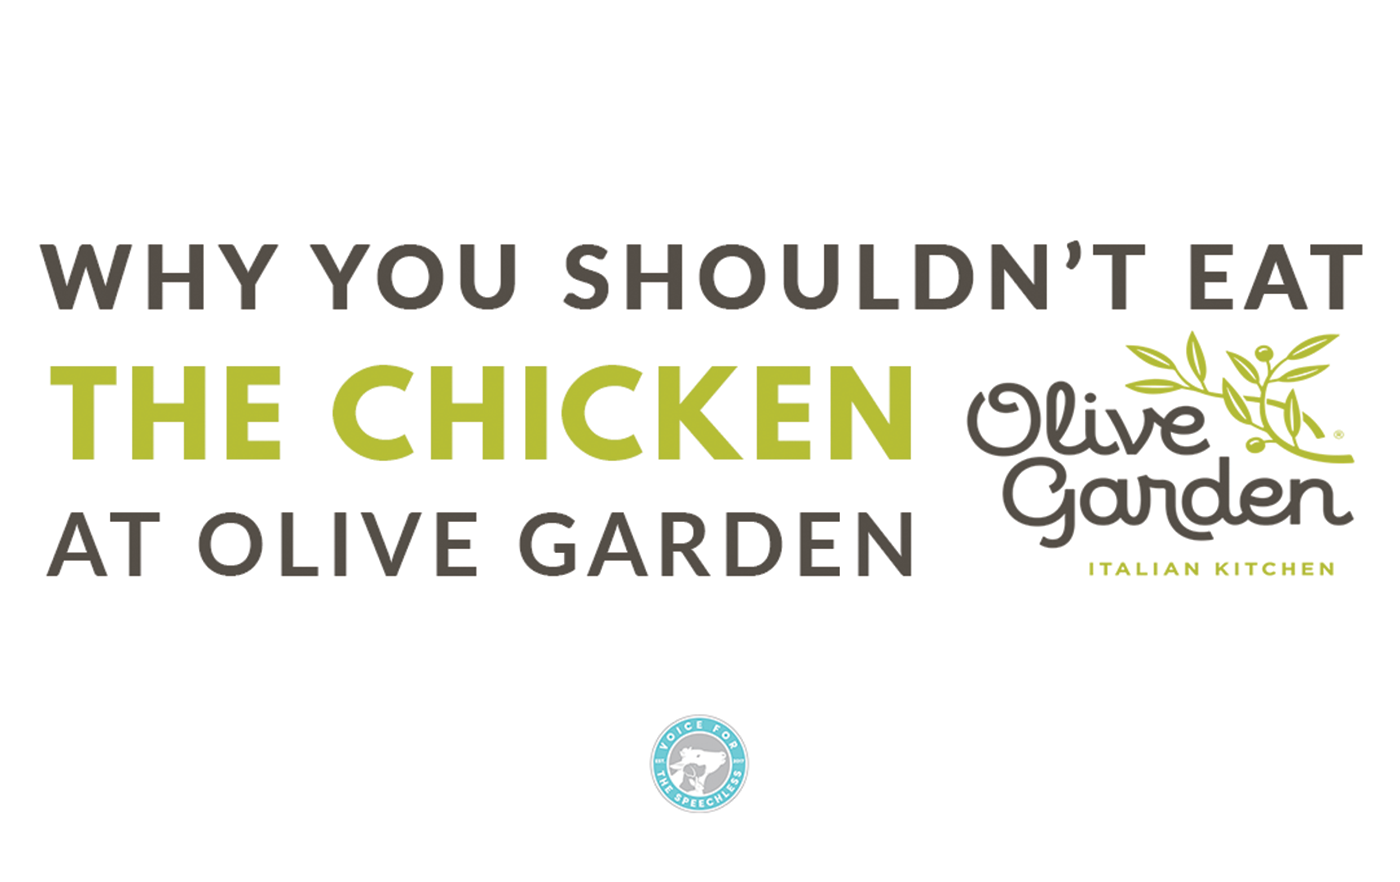 Why You Shouldn't Eat The Chicken At Olive Garden